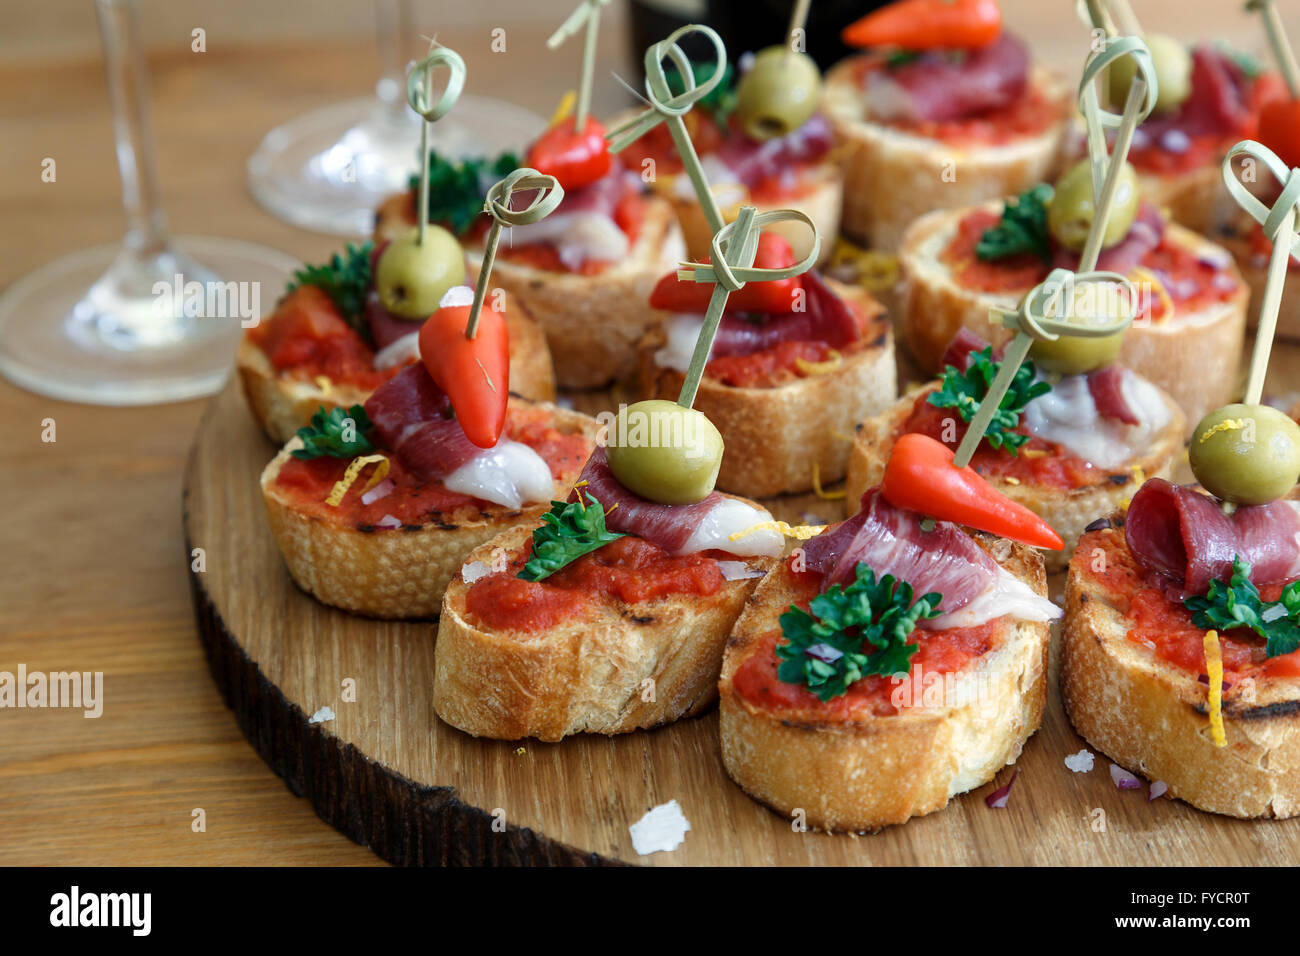 party fingerfood tapas pinchos und spanischen h ppchen stockfoto bild 102929032 alamy. Black Bedroom Furniture Sets. Home Design Ideas